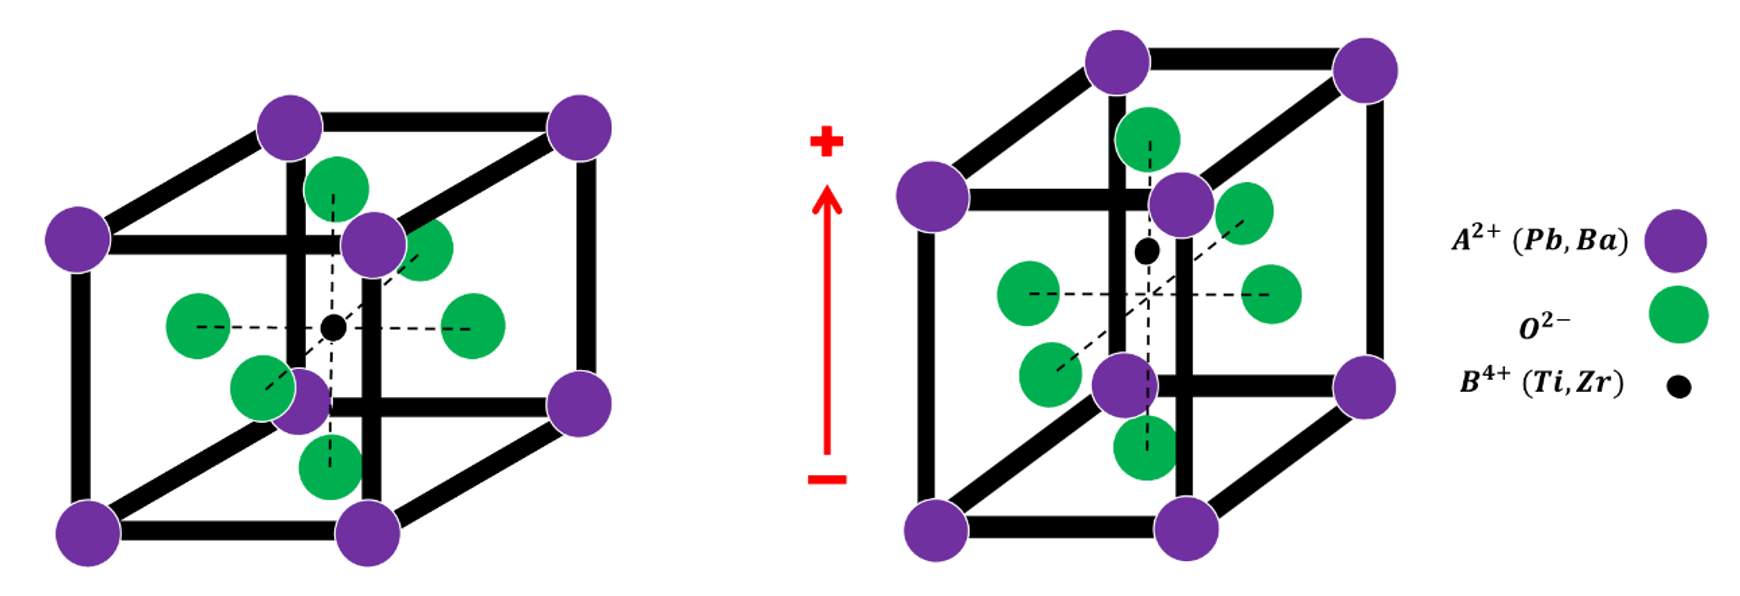 Centrosymmetric (left) and noncentrosymetric (right) crystal structure. The slight elongation of the c-axis causes the center atom to be off-centered, creating a net dipole moment in the crystal.